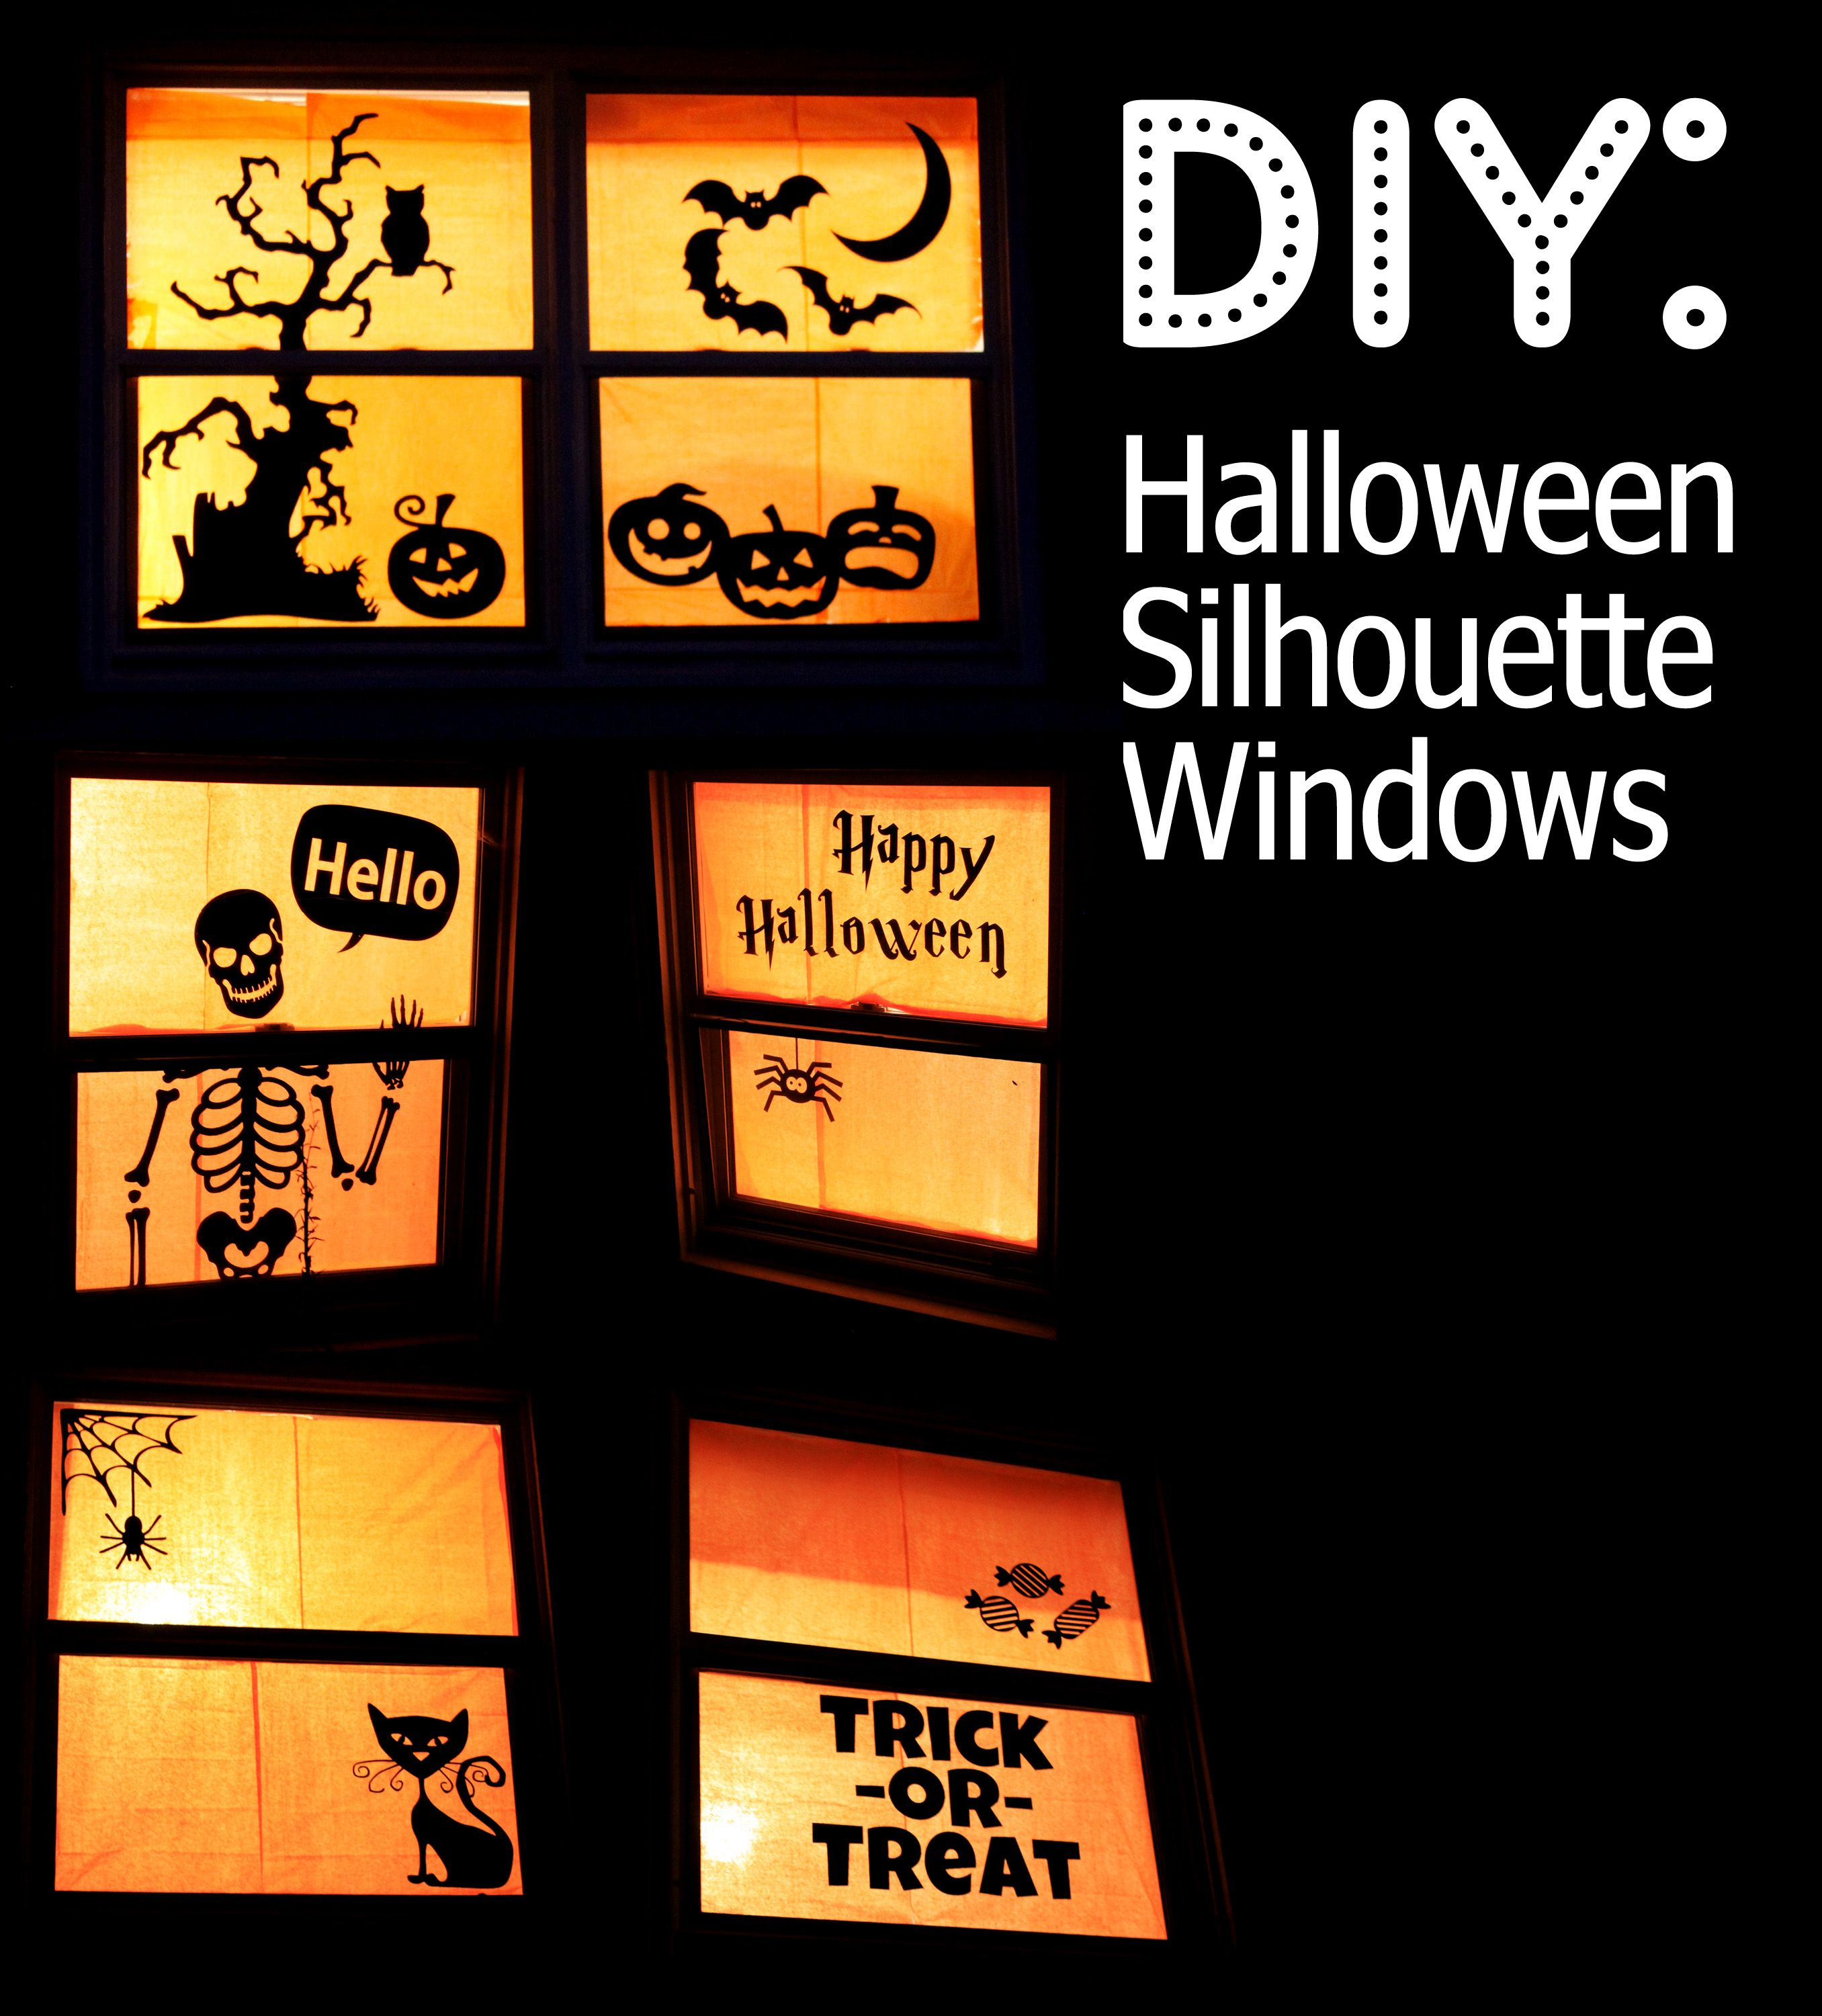 decorations cellophane poster decor window black pin board halloween and